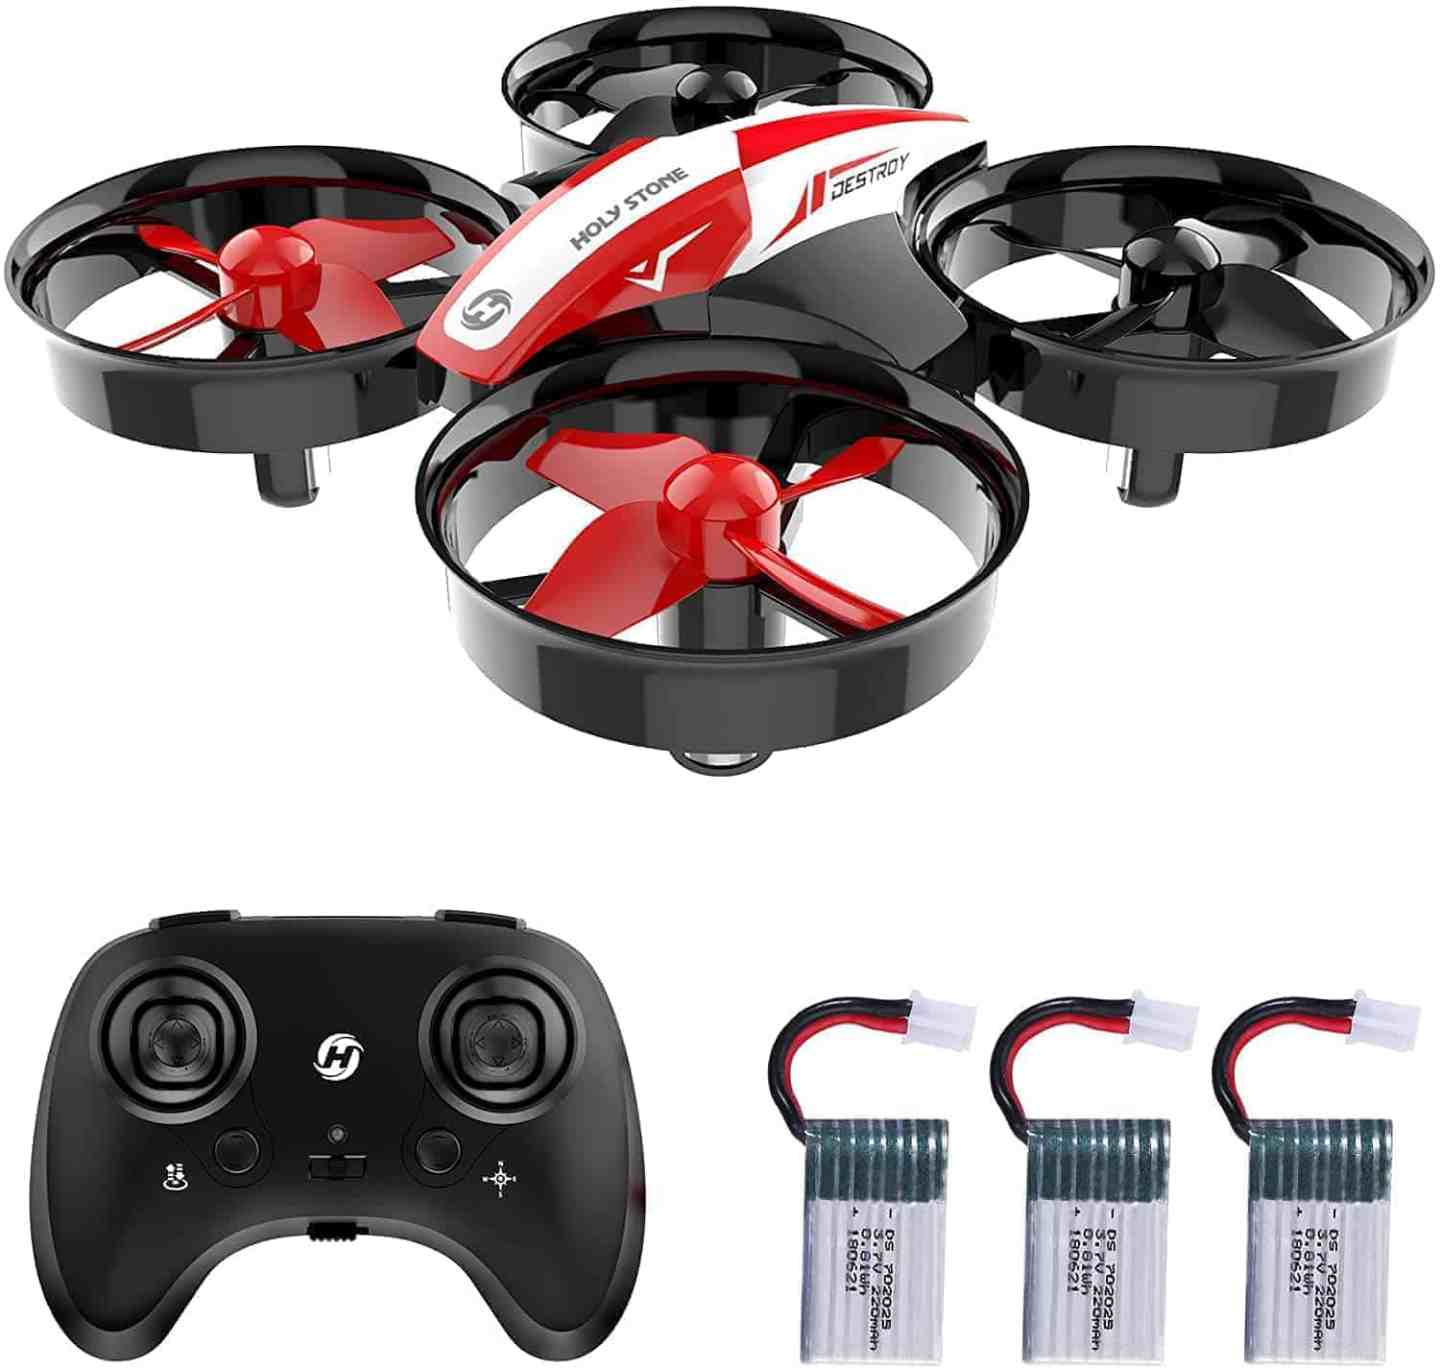 Mini-Drone-for-Kids-and-Beginners